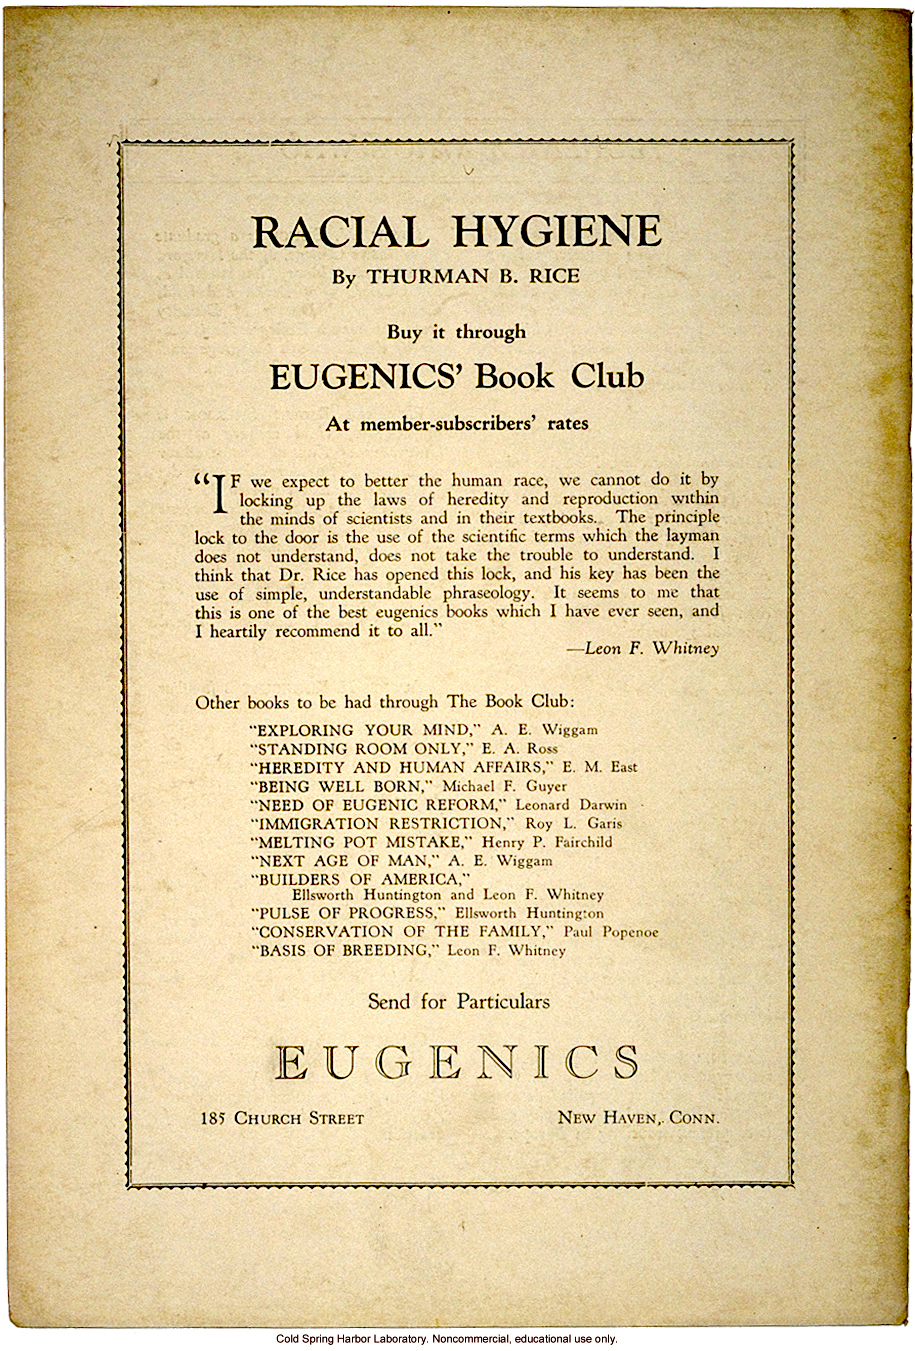 Advertisement for <i>Racial Hygiene</i>, for Eugenics' Book Club, Eugenics: A Journal of Race Betterment (vol II:8)